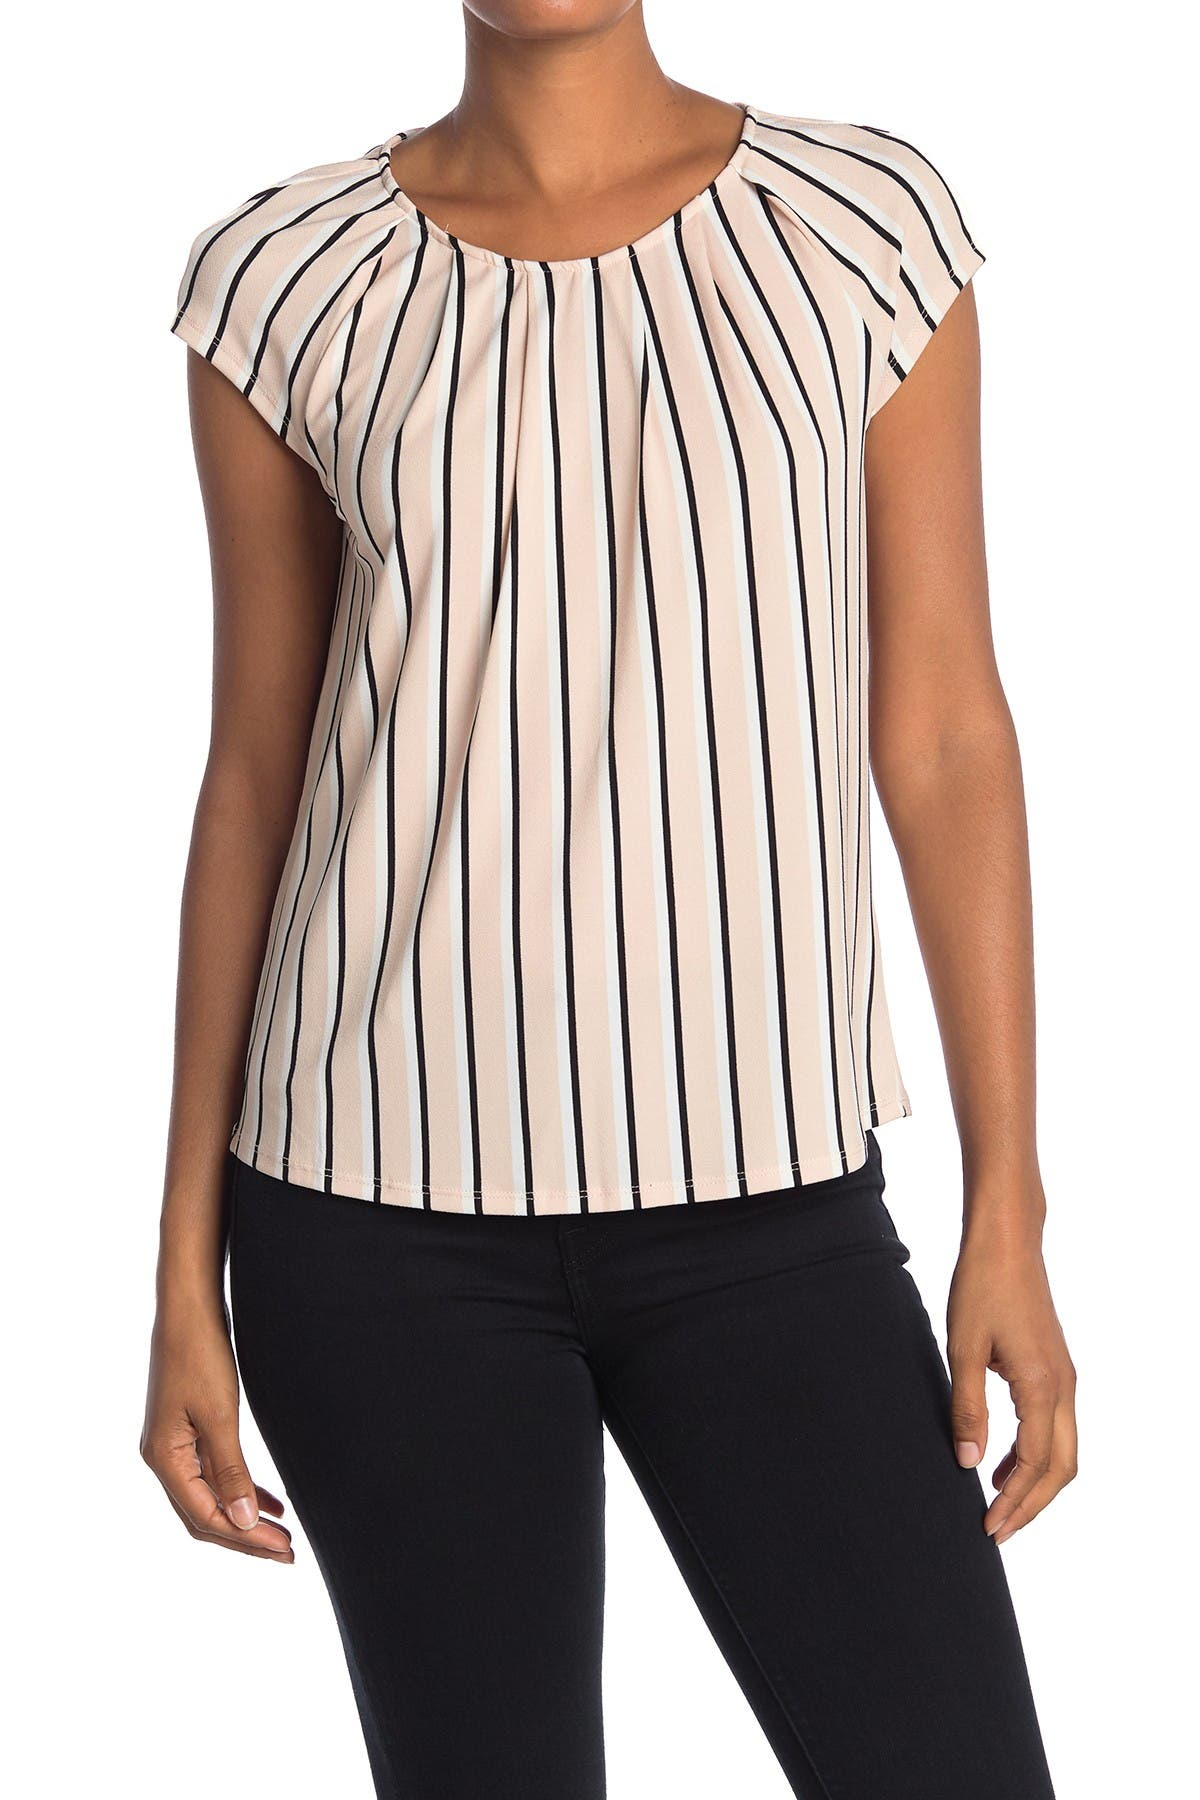 Image of Adrianna Papell Striped Cap Sleeve Top